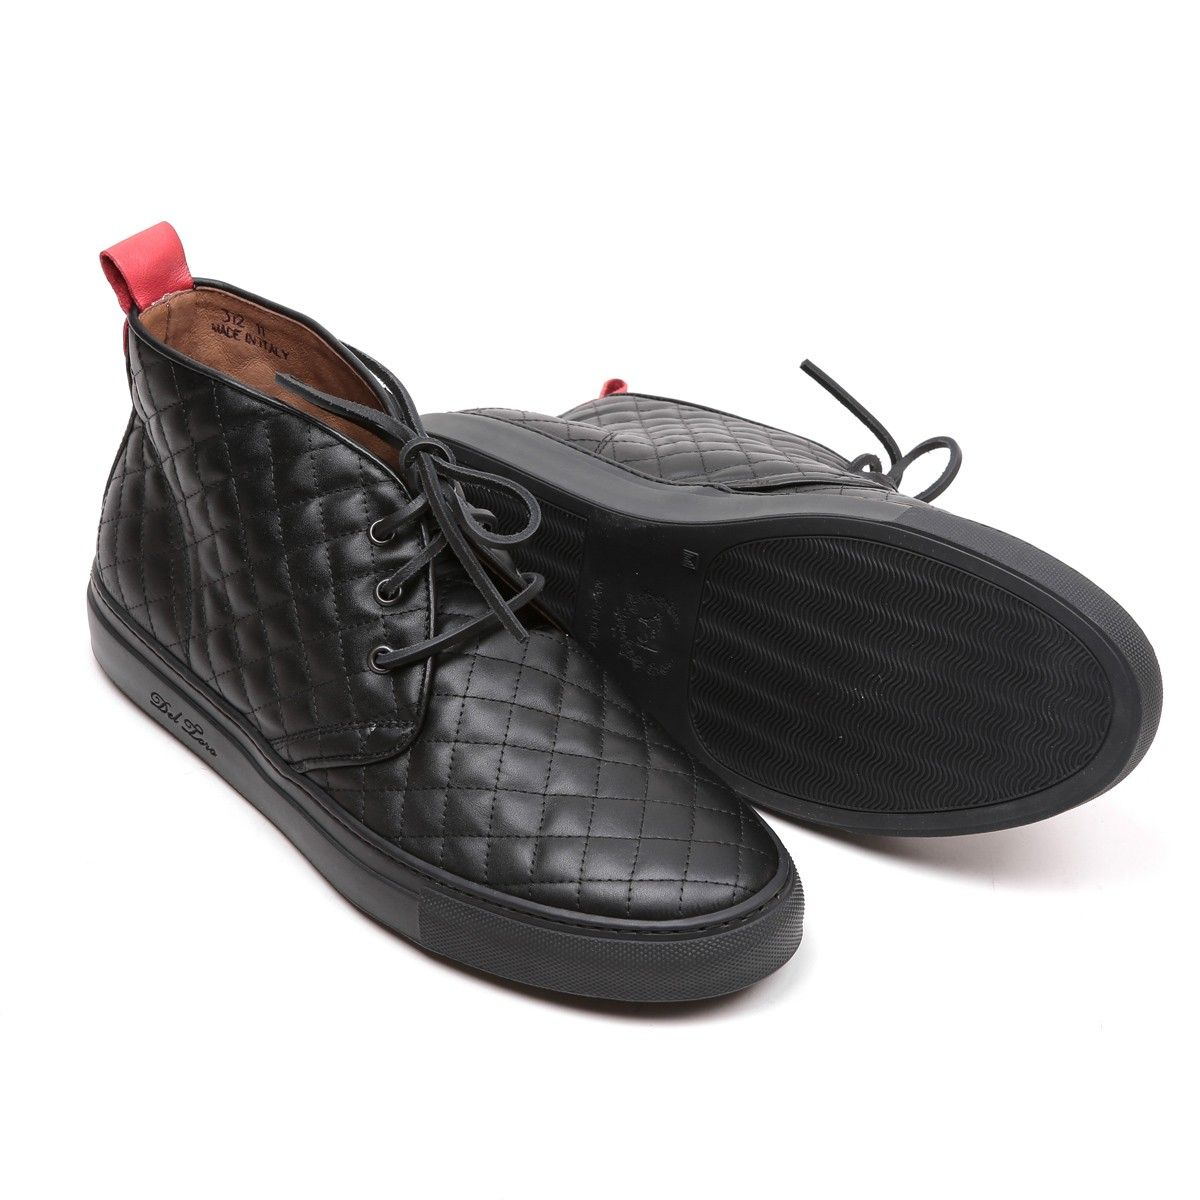 93d70dd1375b Men s Black Quilted Nappa Leather Alto Chukka Sneaker Del Toro ...